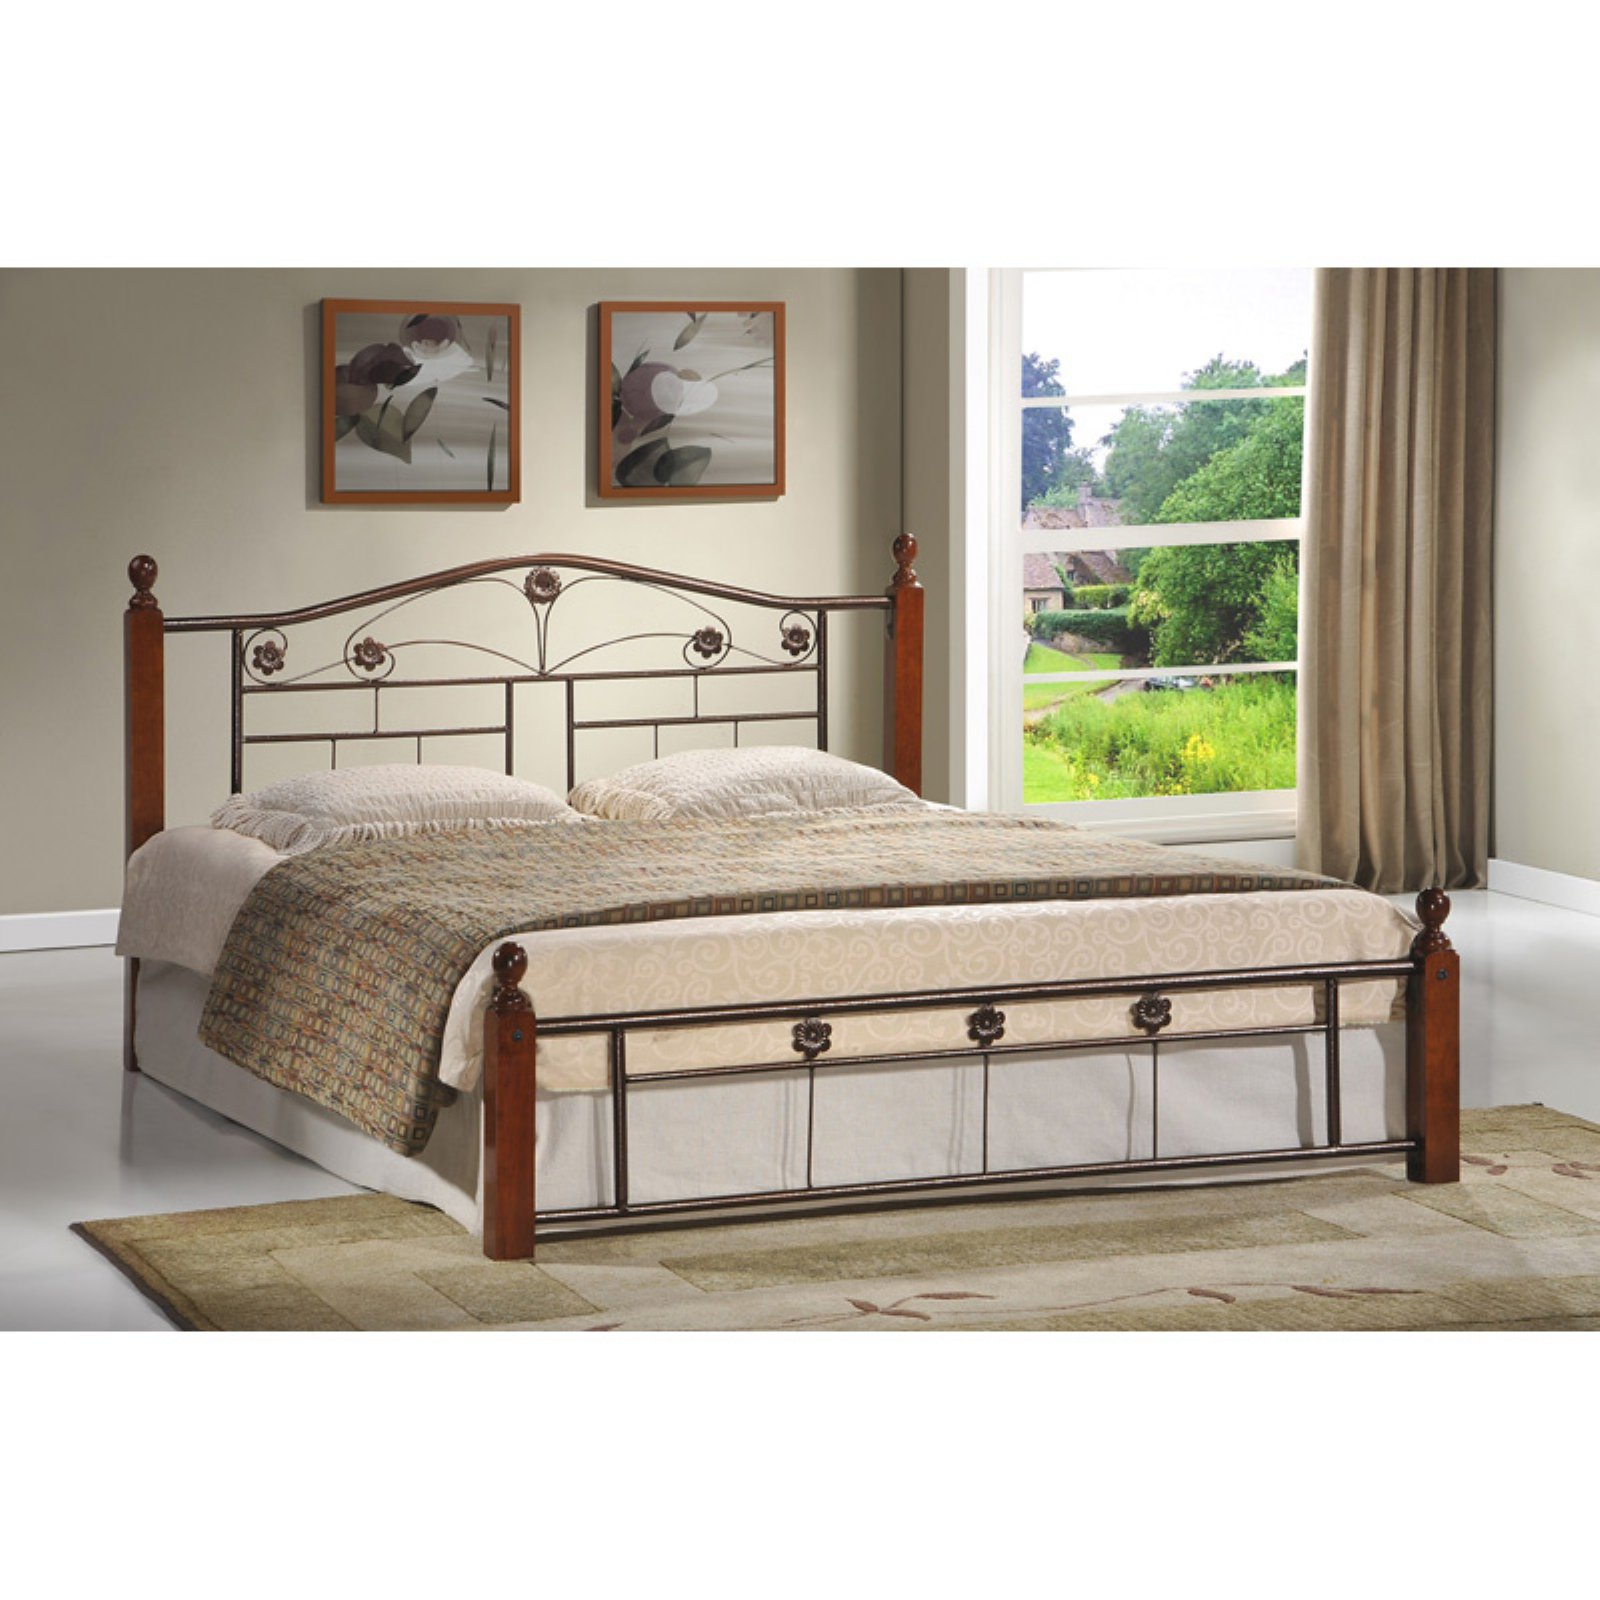 Hodedah Imports Wooden Poster Bed with Metal Frame by Hodedah